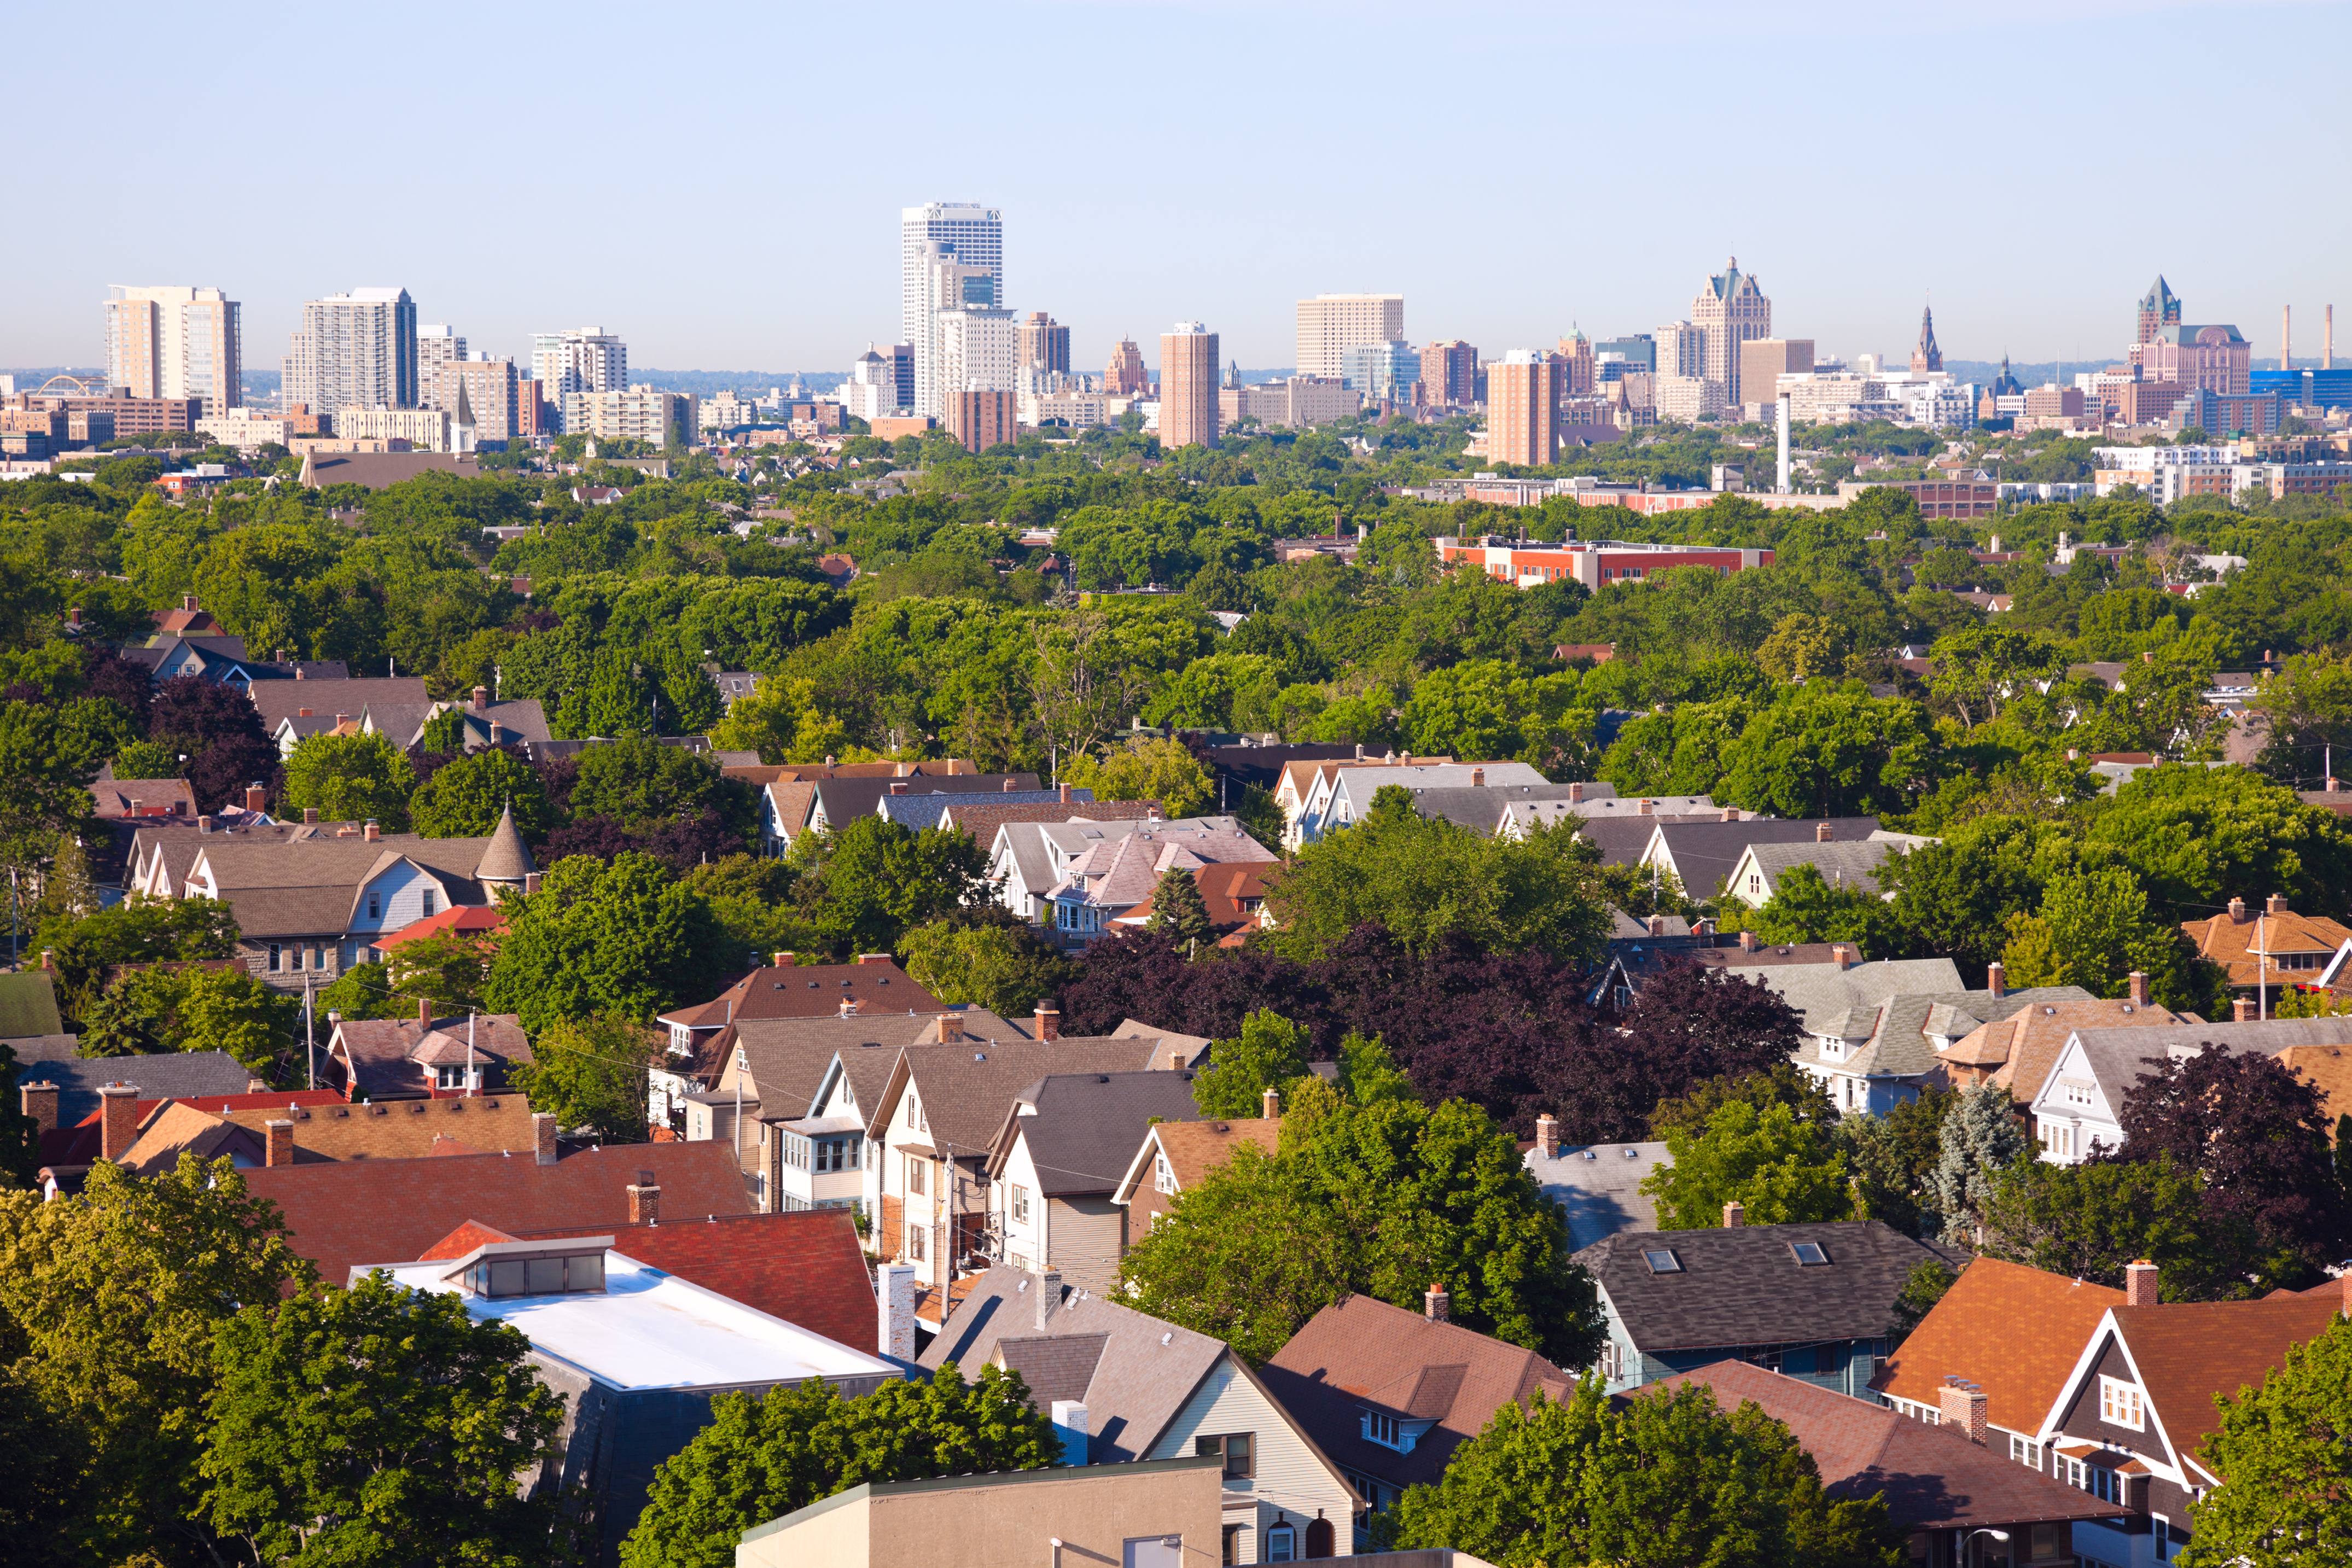 Overhead photo of streets filled with two-story homes and apartments, with a city skyline in the background.